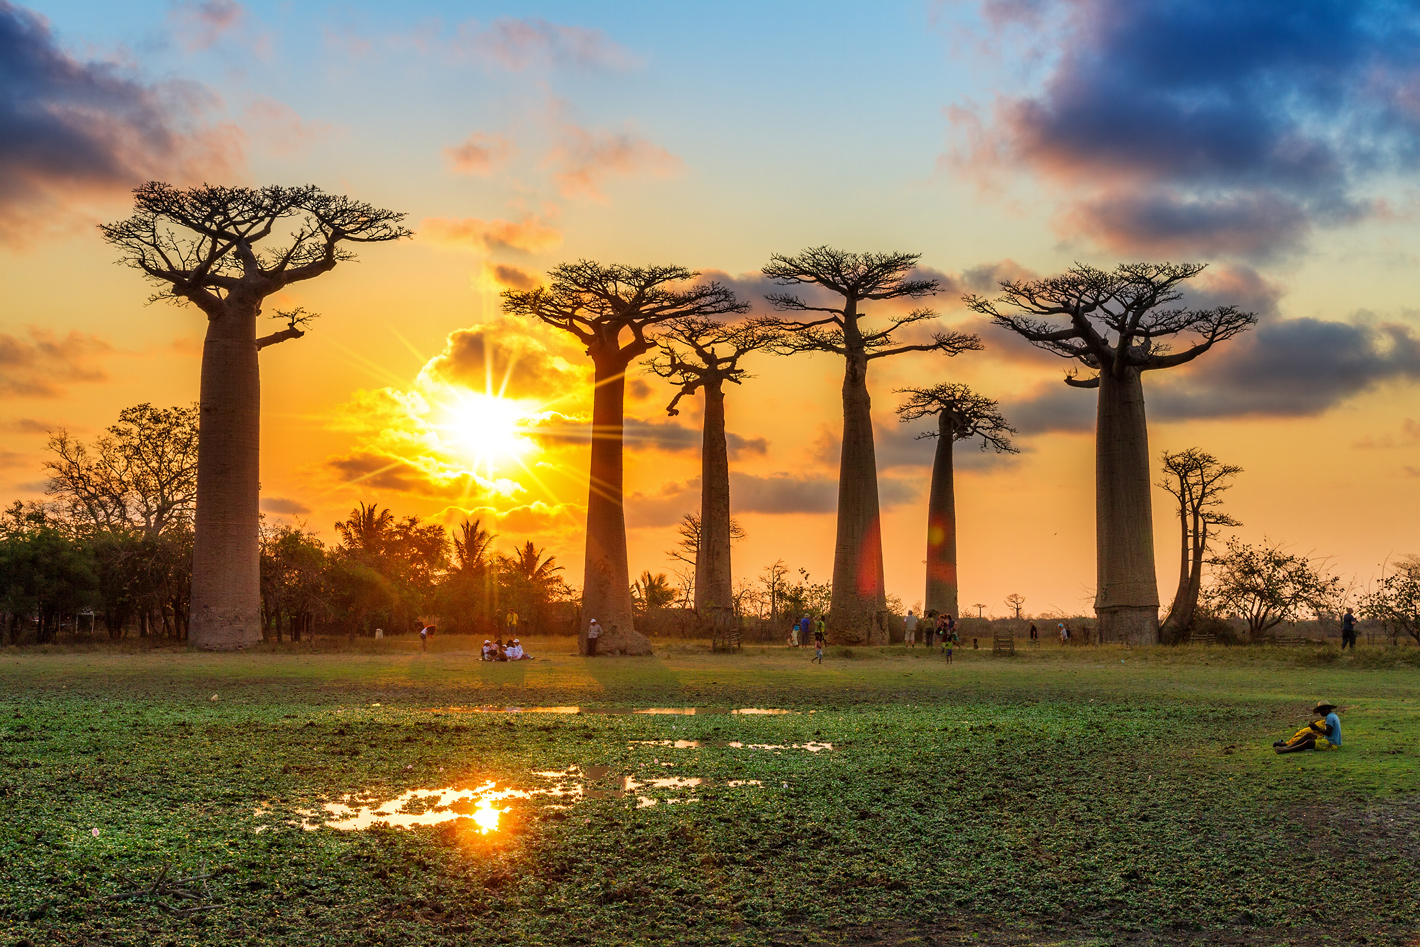 Avenue of baobabs with sunset